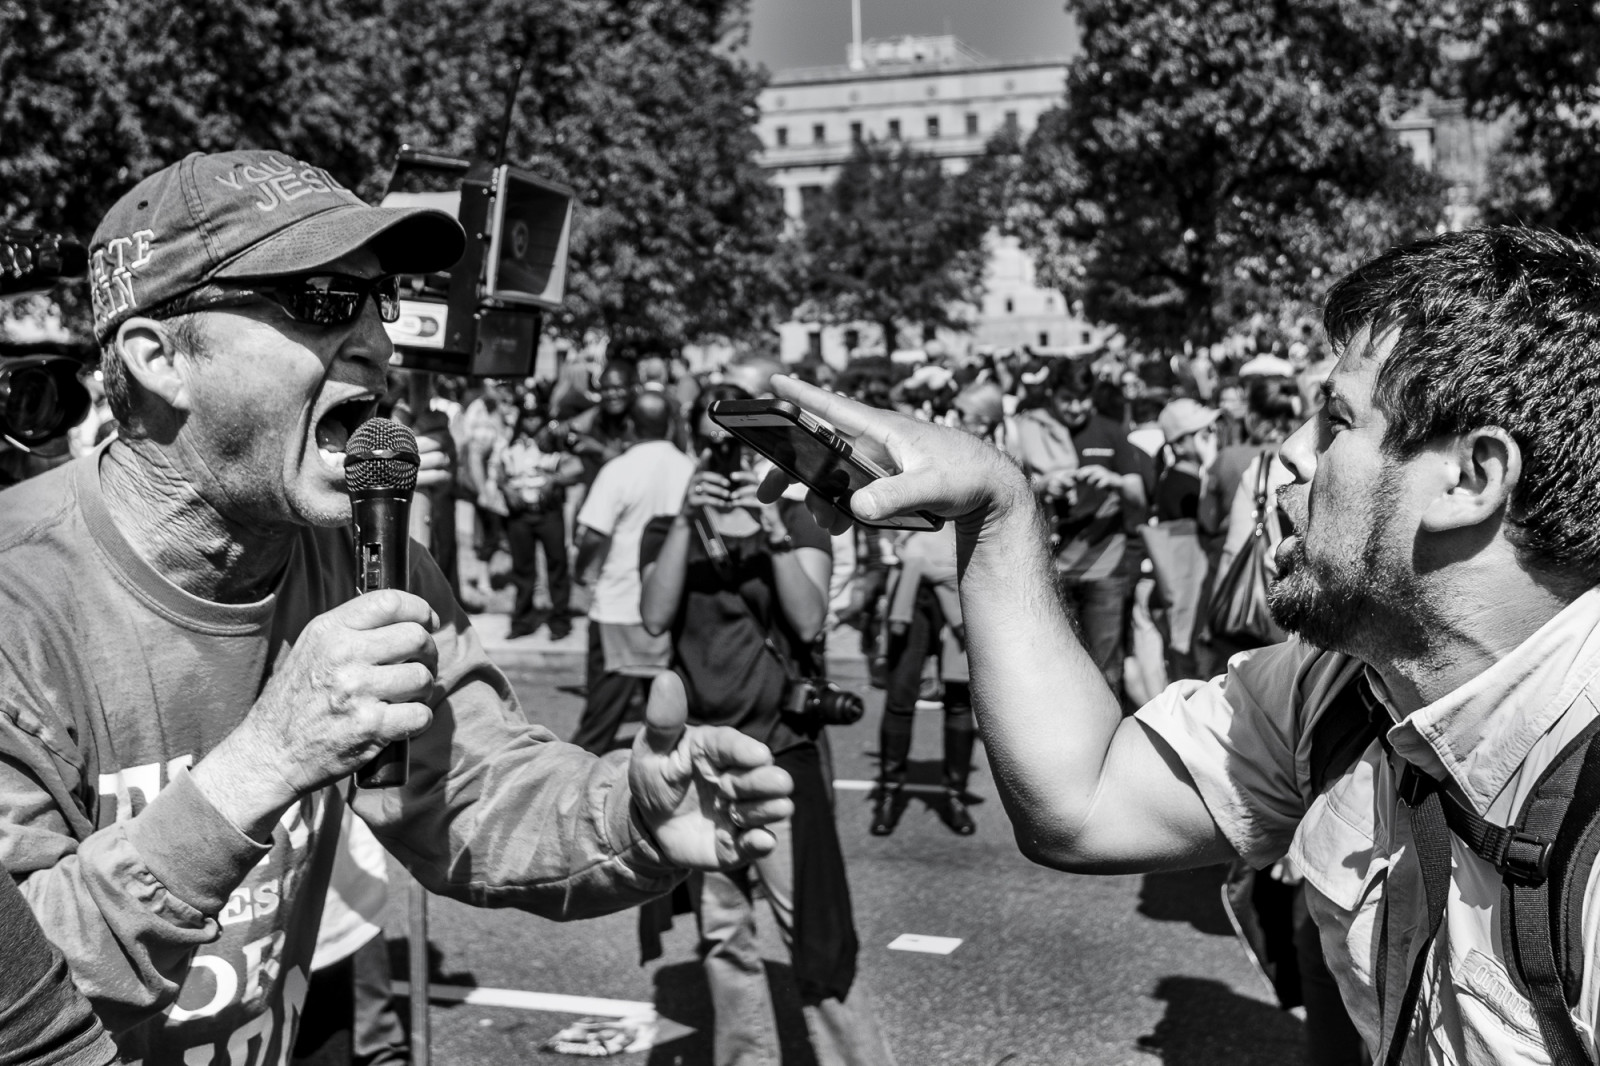 A man from the Los Angeles chapter of Bible Believers (left) and an fan of Pope Francis clash in a war of words following a short parade where Pope Francis was driven on the streets around the Ellipse, south of the White House in Washington, District of Columbia, U.S., on Wednesday, Sept. 23, 2015.  Credit: Pete Marovich/Bloomberg